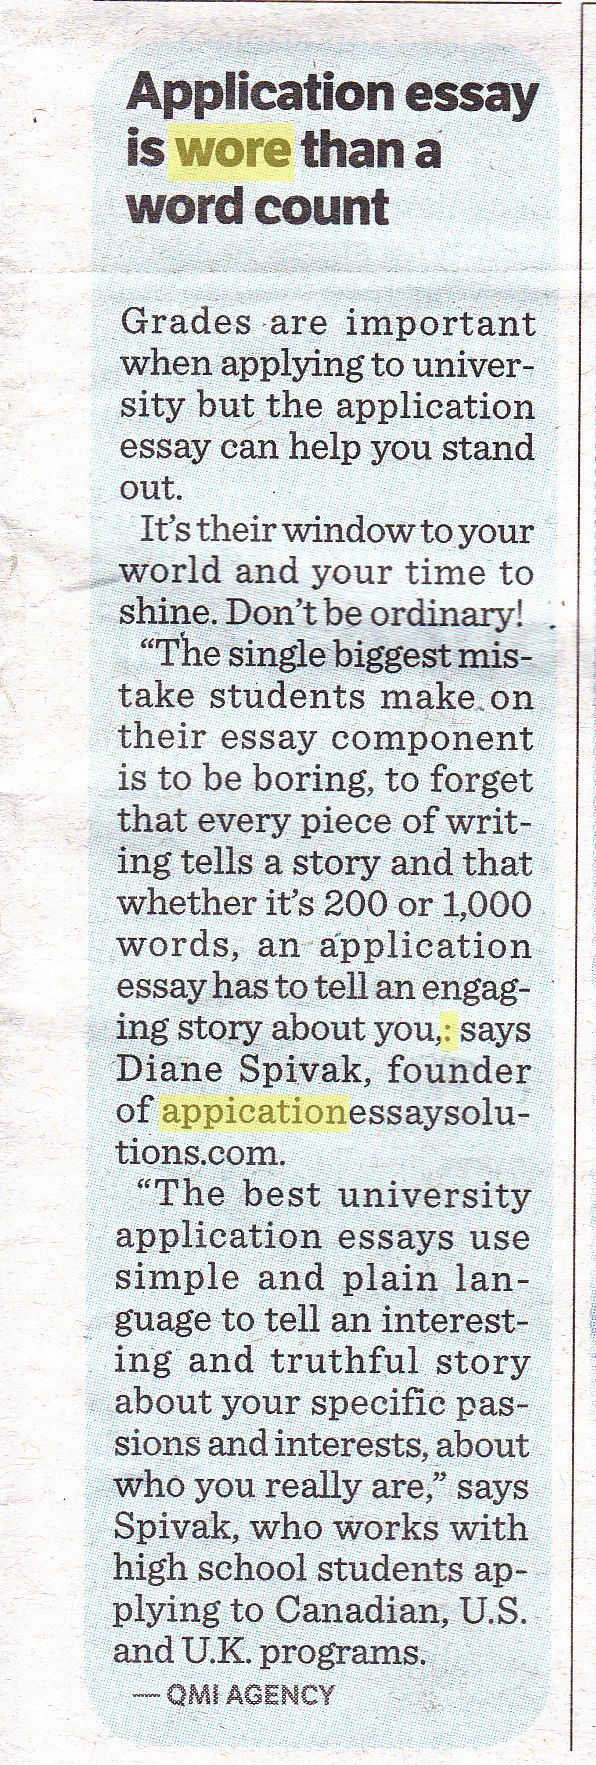 This is an advertorial for a company that helps student write impressive university application essays. Unfortunately, because of the typo in the website, I don't think they'll get much traffic.